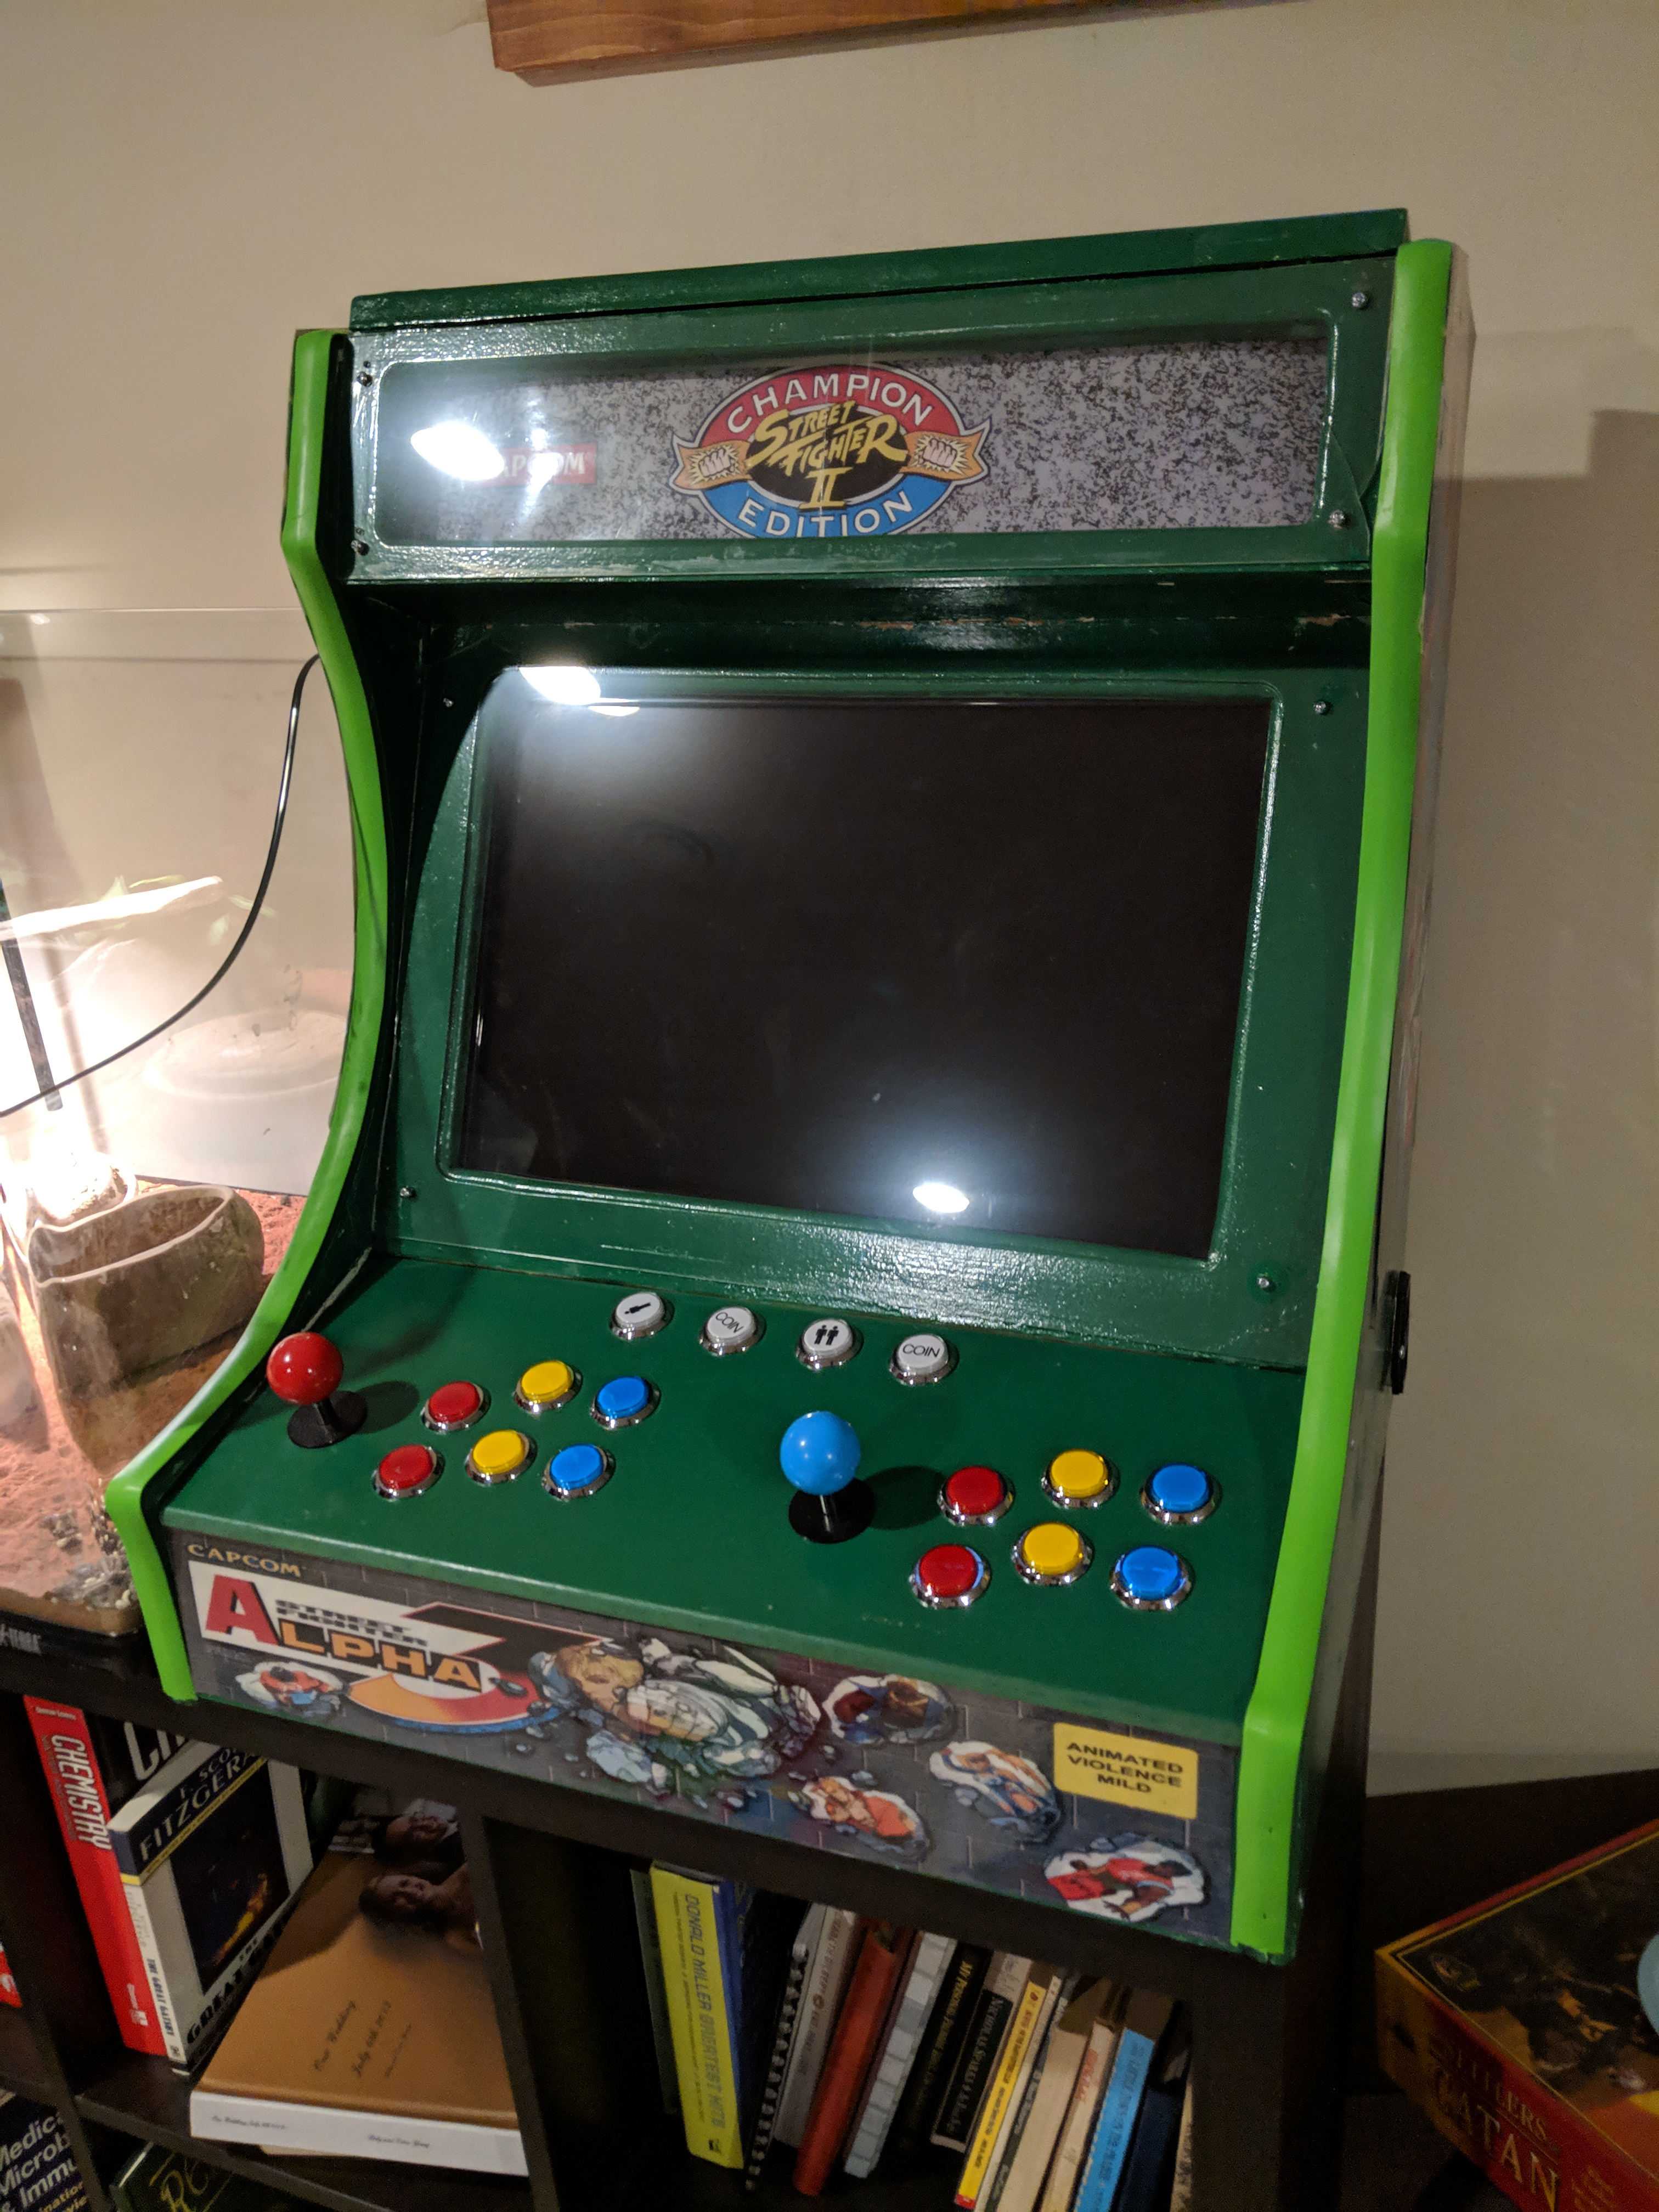 Read more about the article Retropie Arcade with Raspberry pi